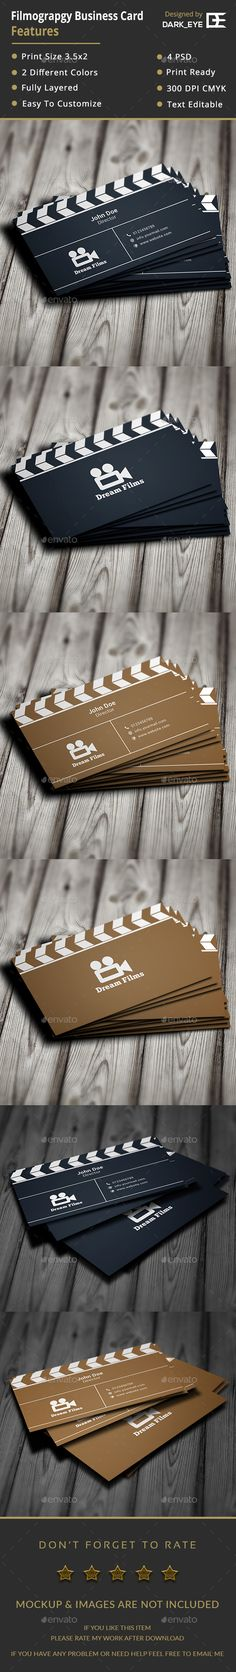 Filmography Business Card — Photoshop PSD #filmmaking #filmographer • Available here → https://graphicriver.net/item/filmography-business-card/17624673?ref=pxcr